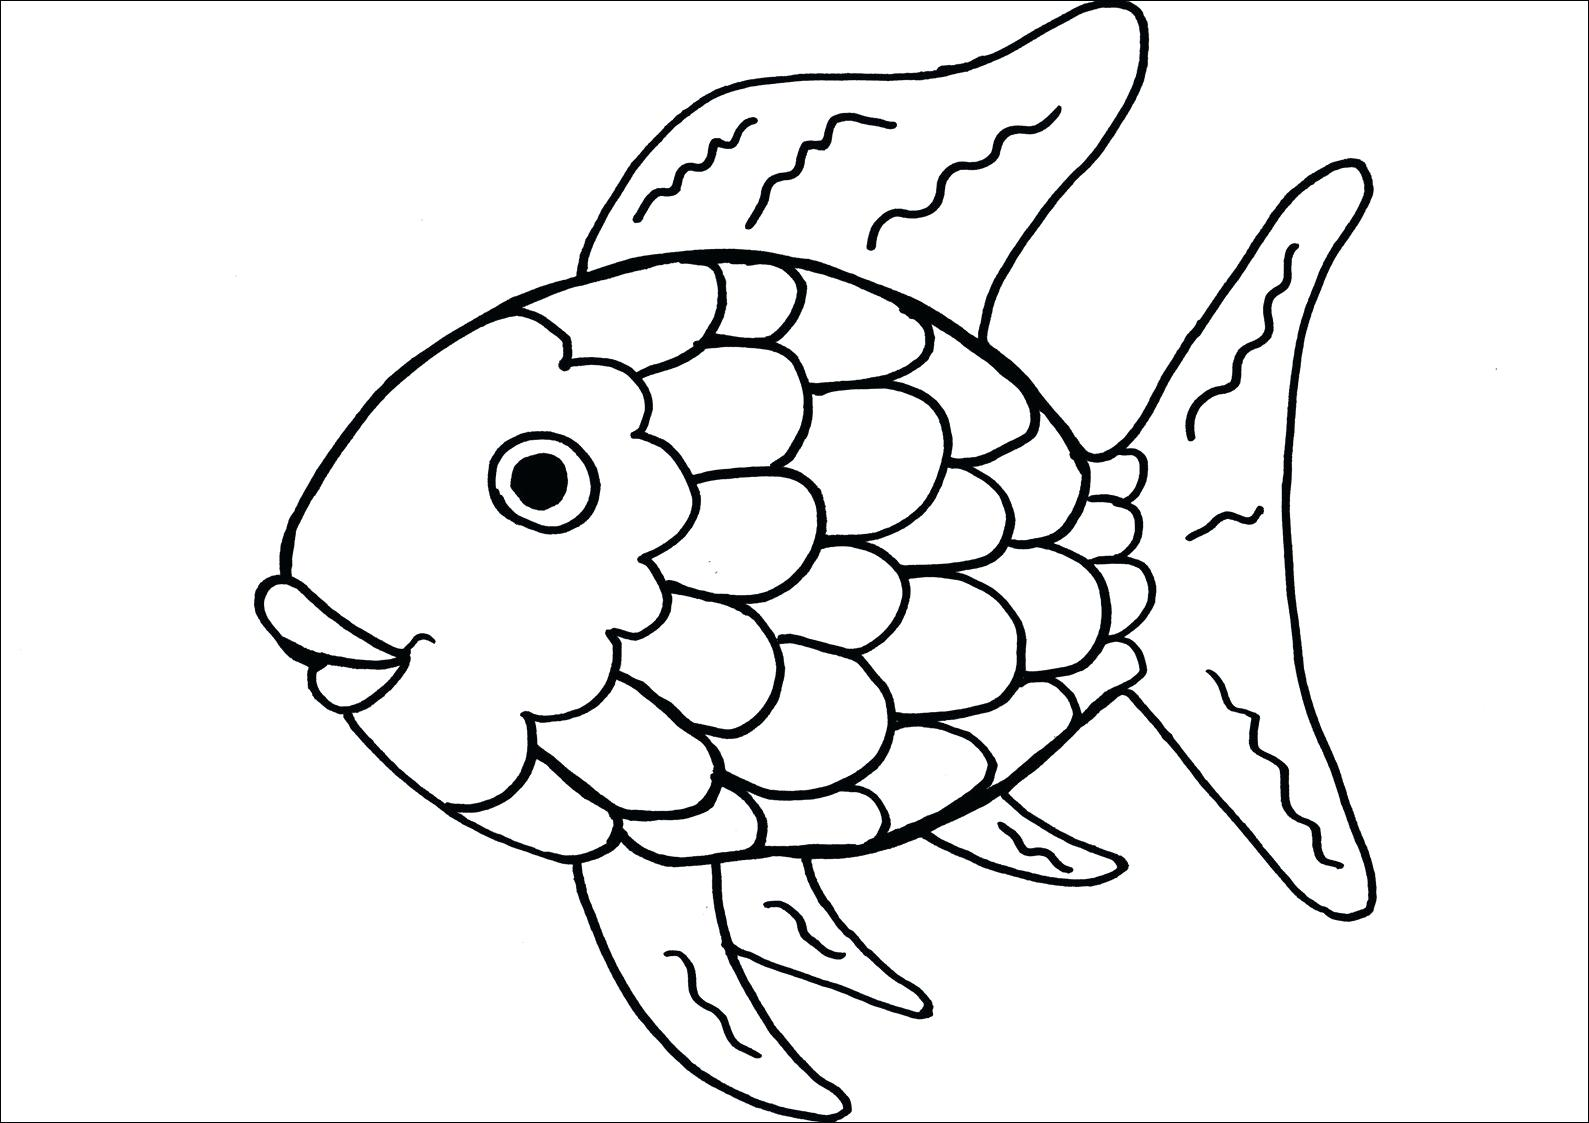 1589x1123 Printable Fish Template Printable Large